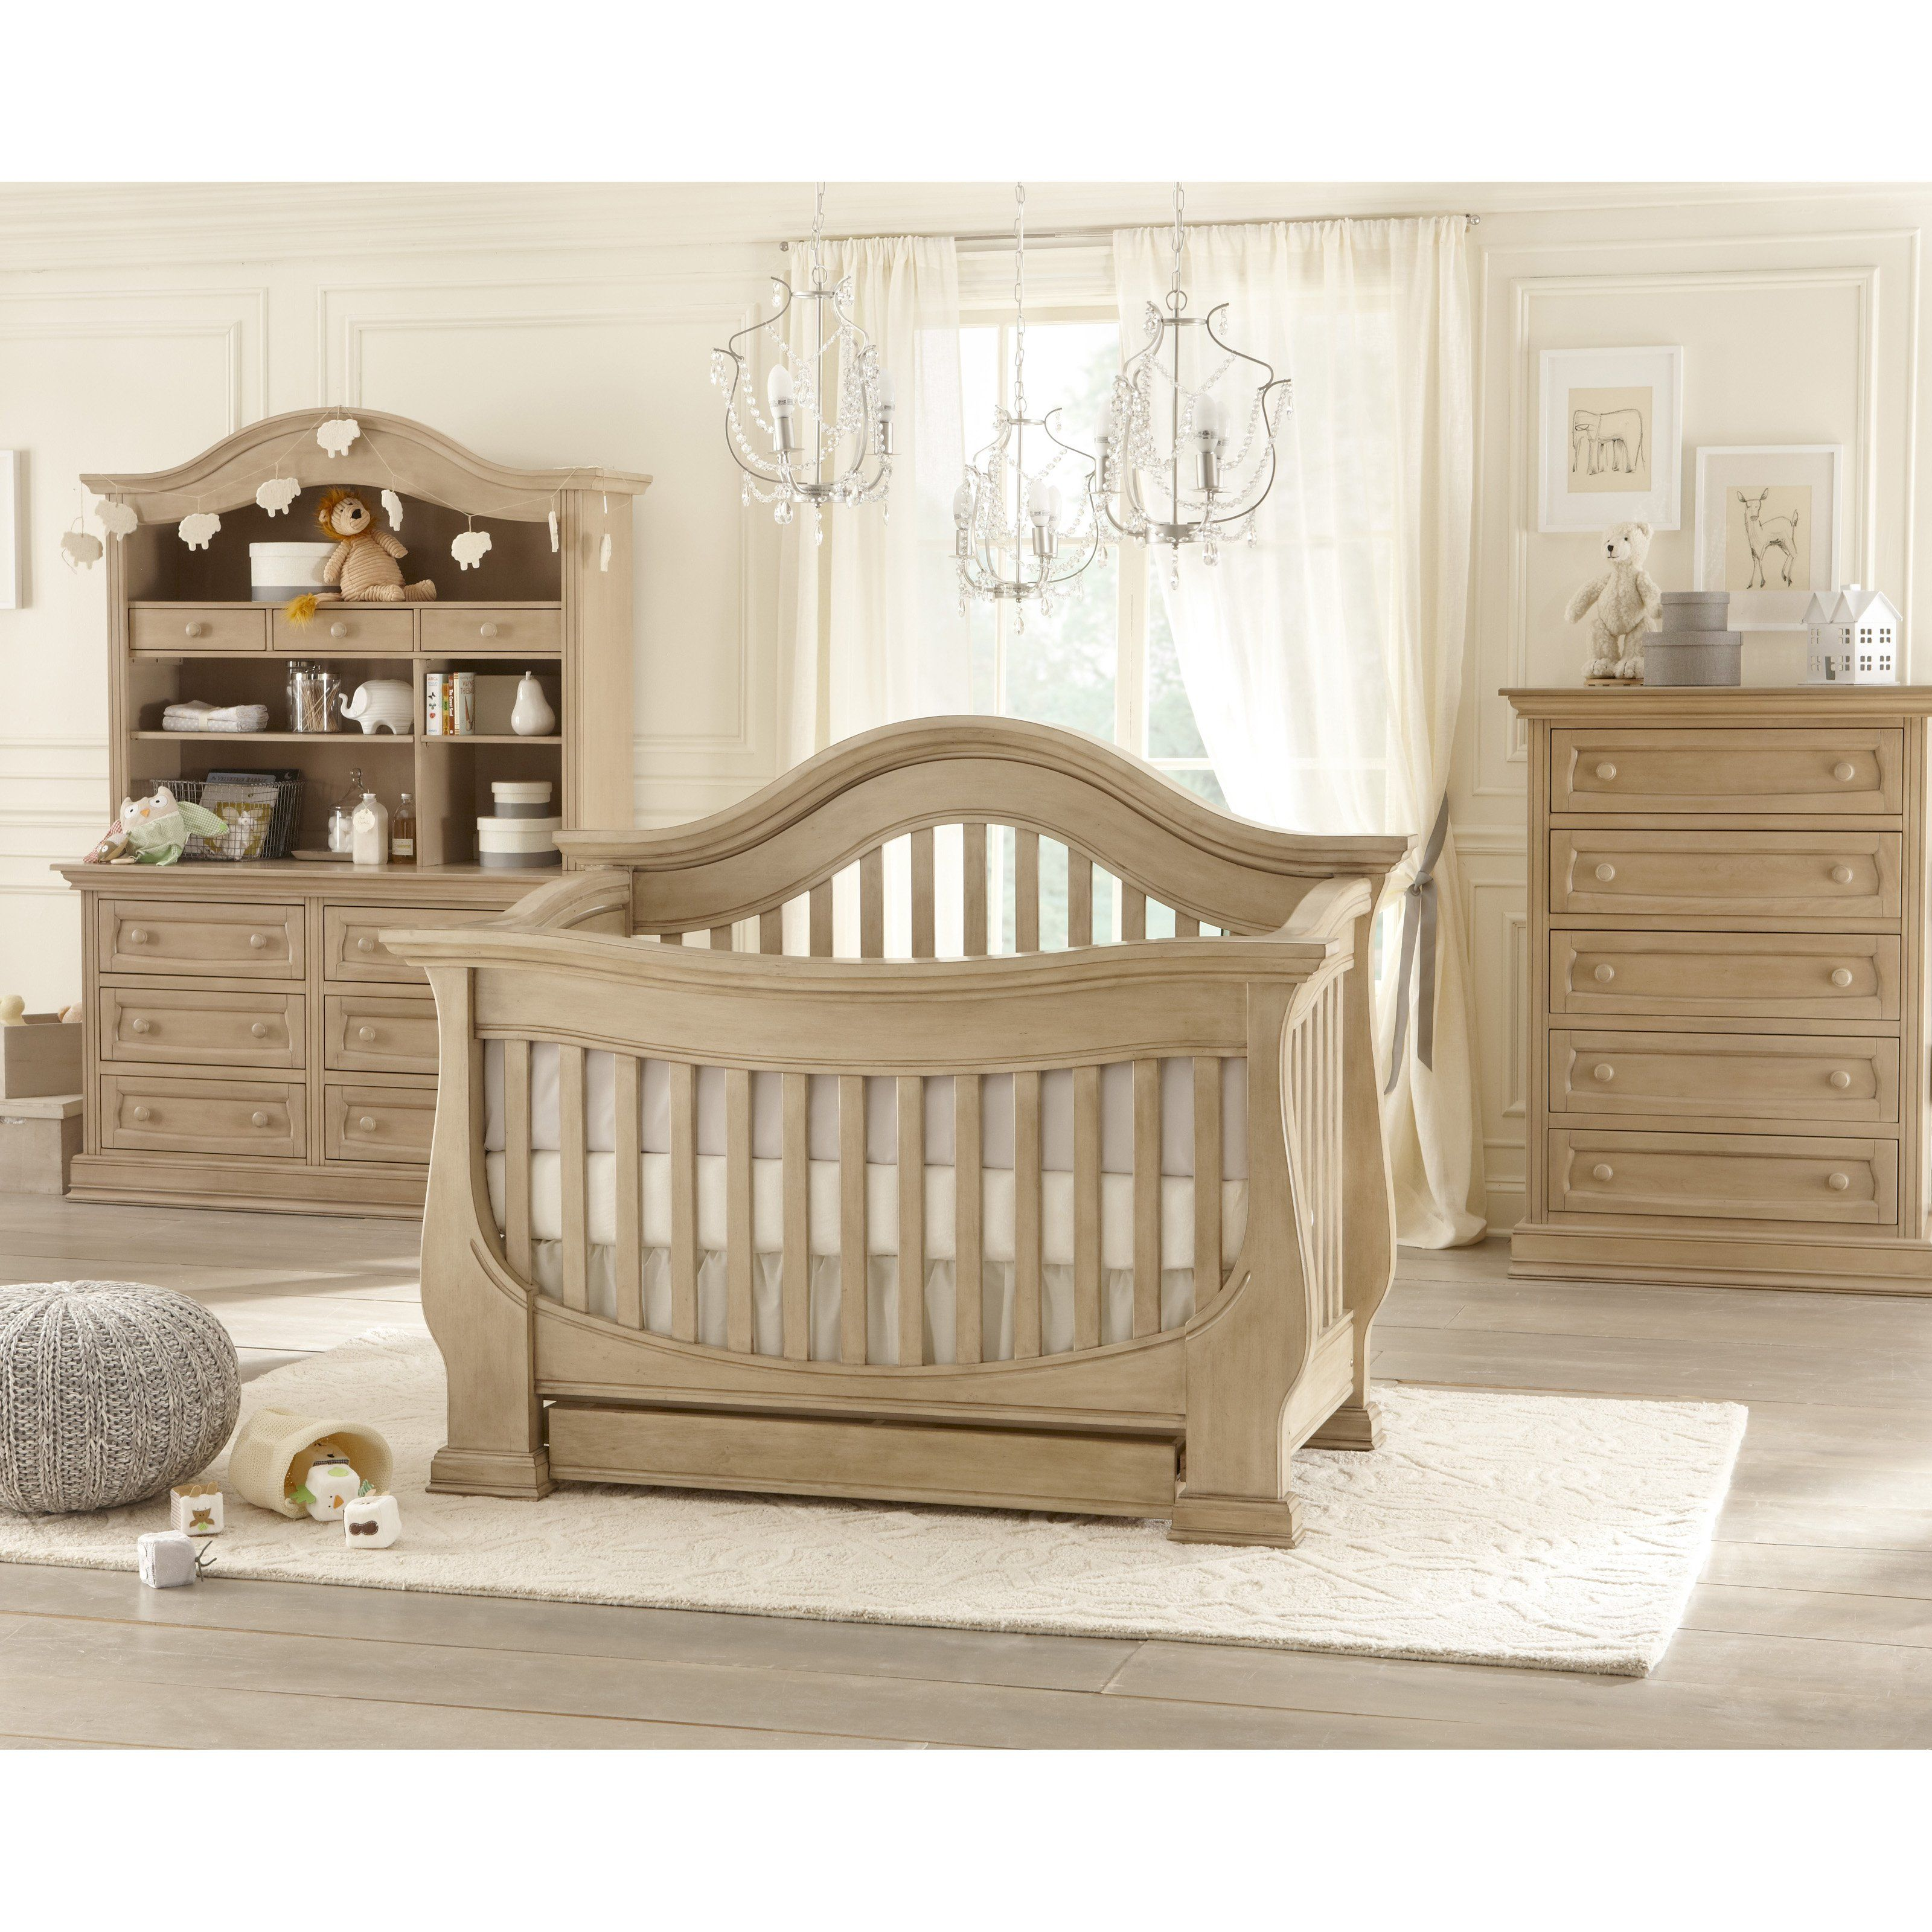 Have to have it. Baby Appleseed Davenport 3in1